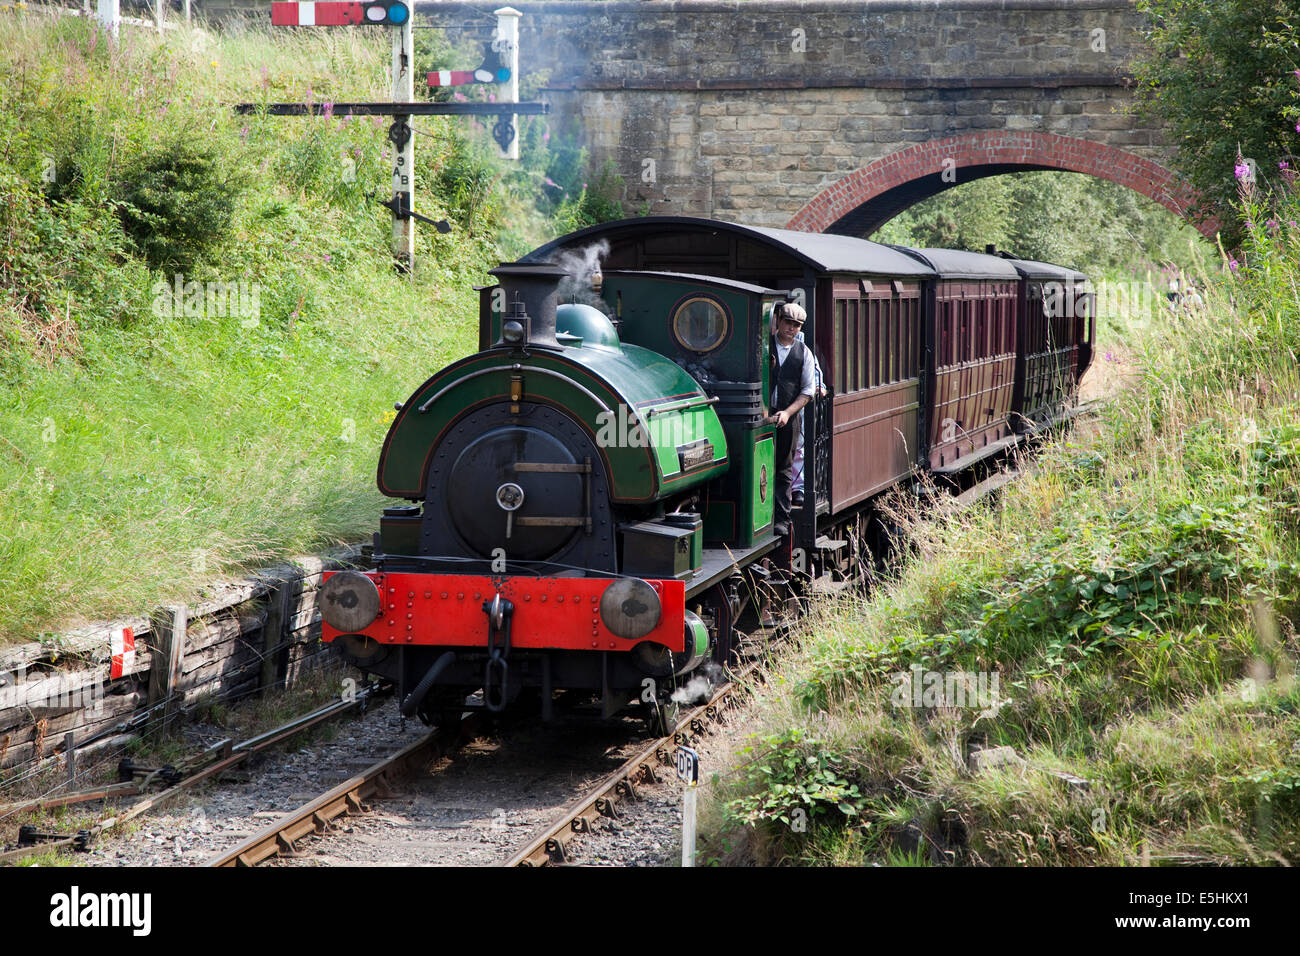 The steam engine 'Sir Cecil A Cochrane' pulling passenger carriages at the Tanfield Railway, Durham. - Stock Image